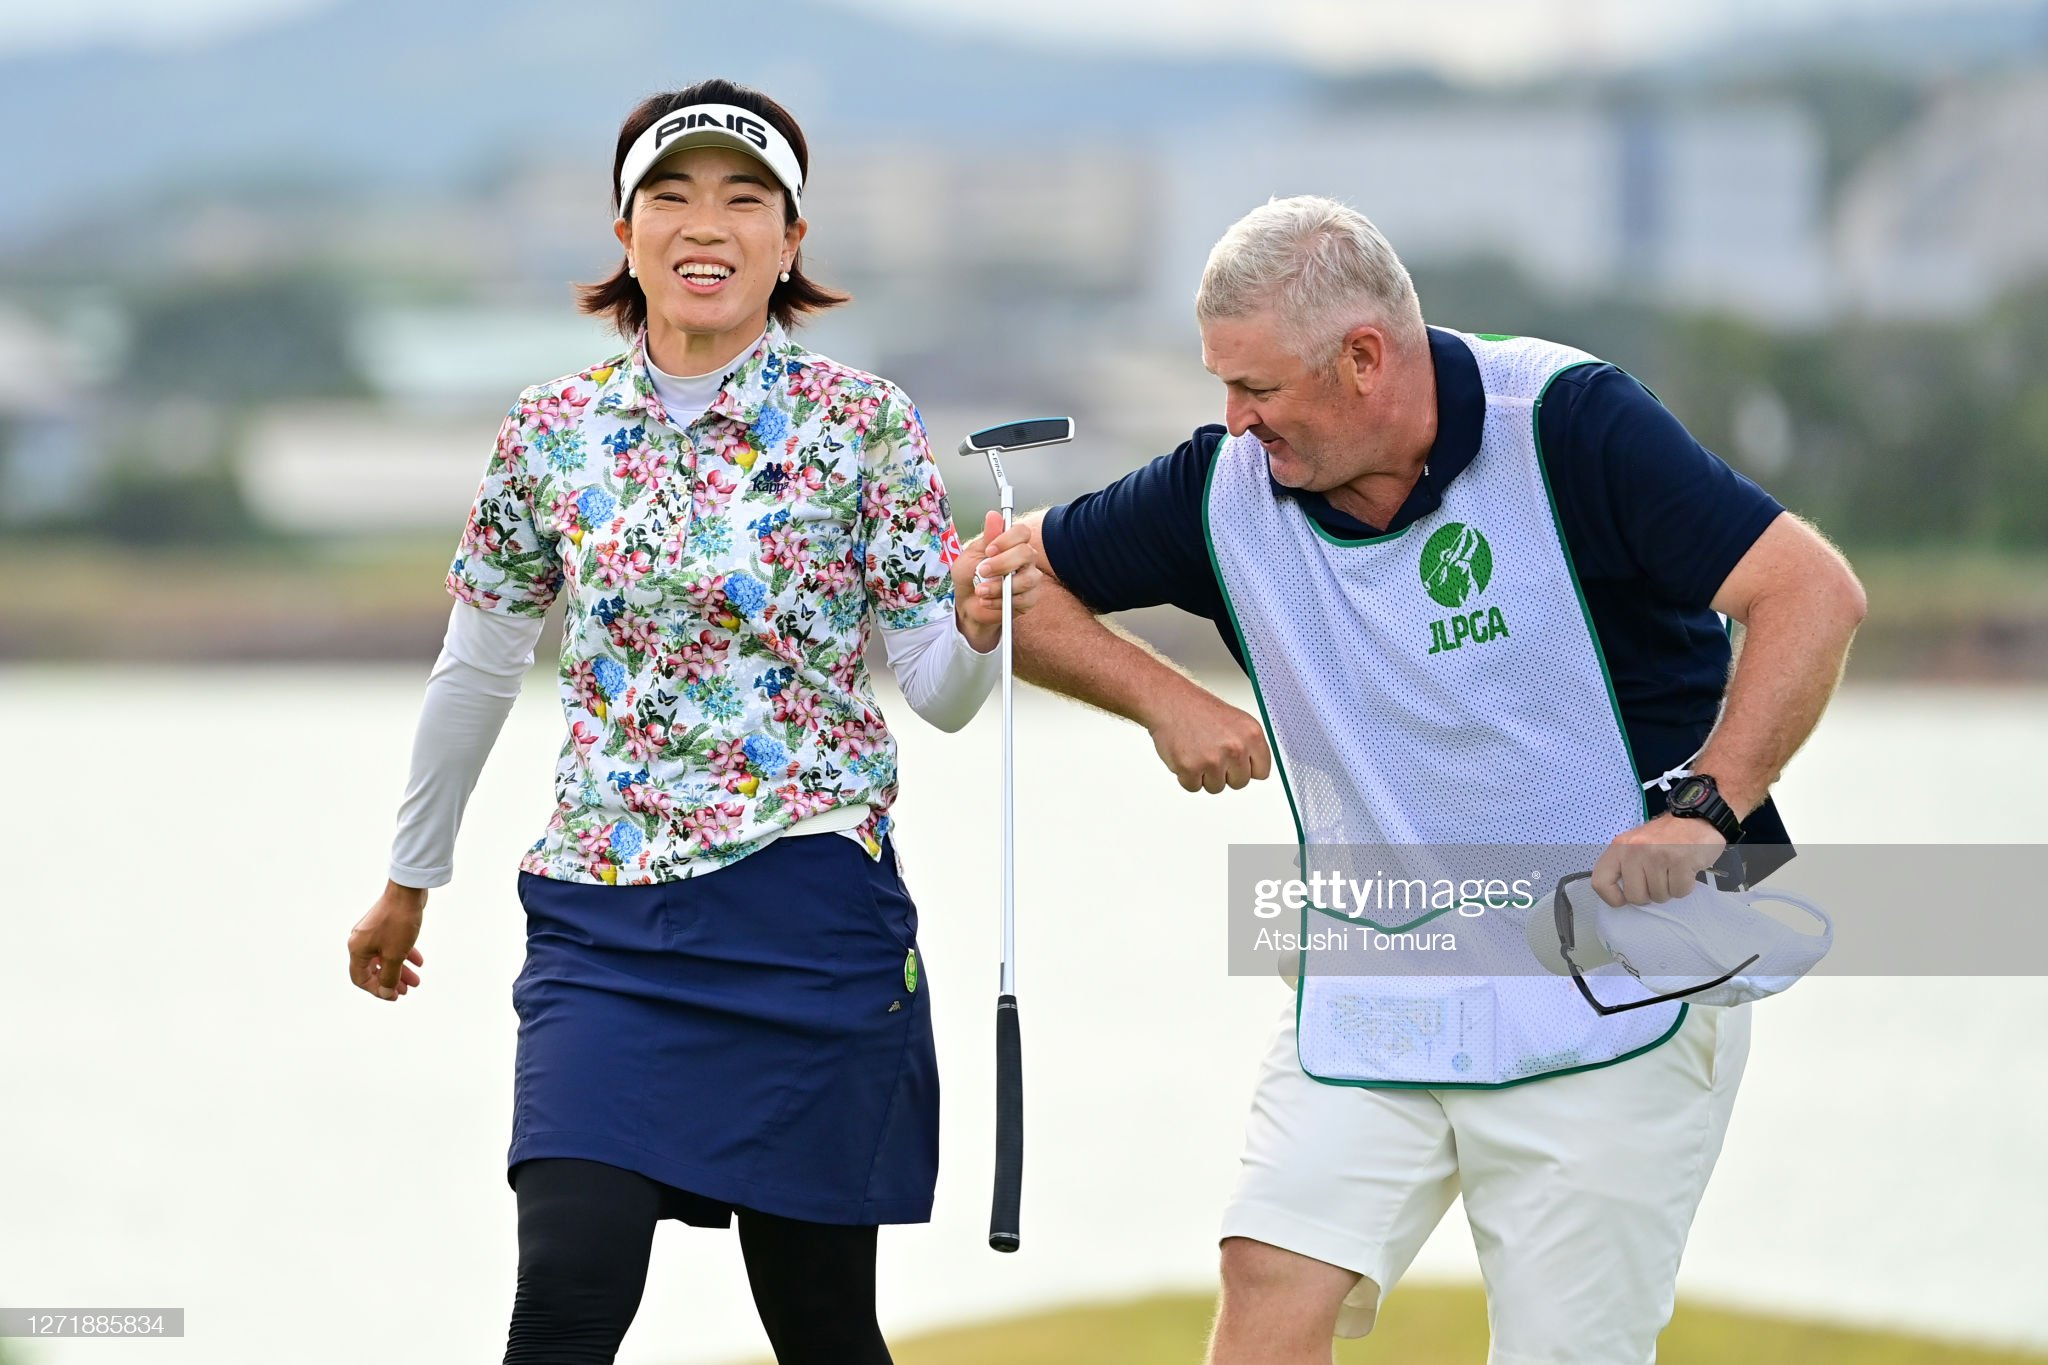 https://media.gettyimages.com/photos/shiho-oyama-of-japan-elbow-bumps-with-her-caddie-after-the-birdie-on-picture-id1271885834?s=2048x2048